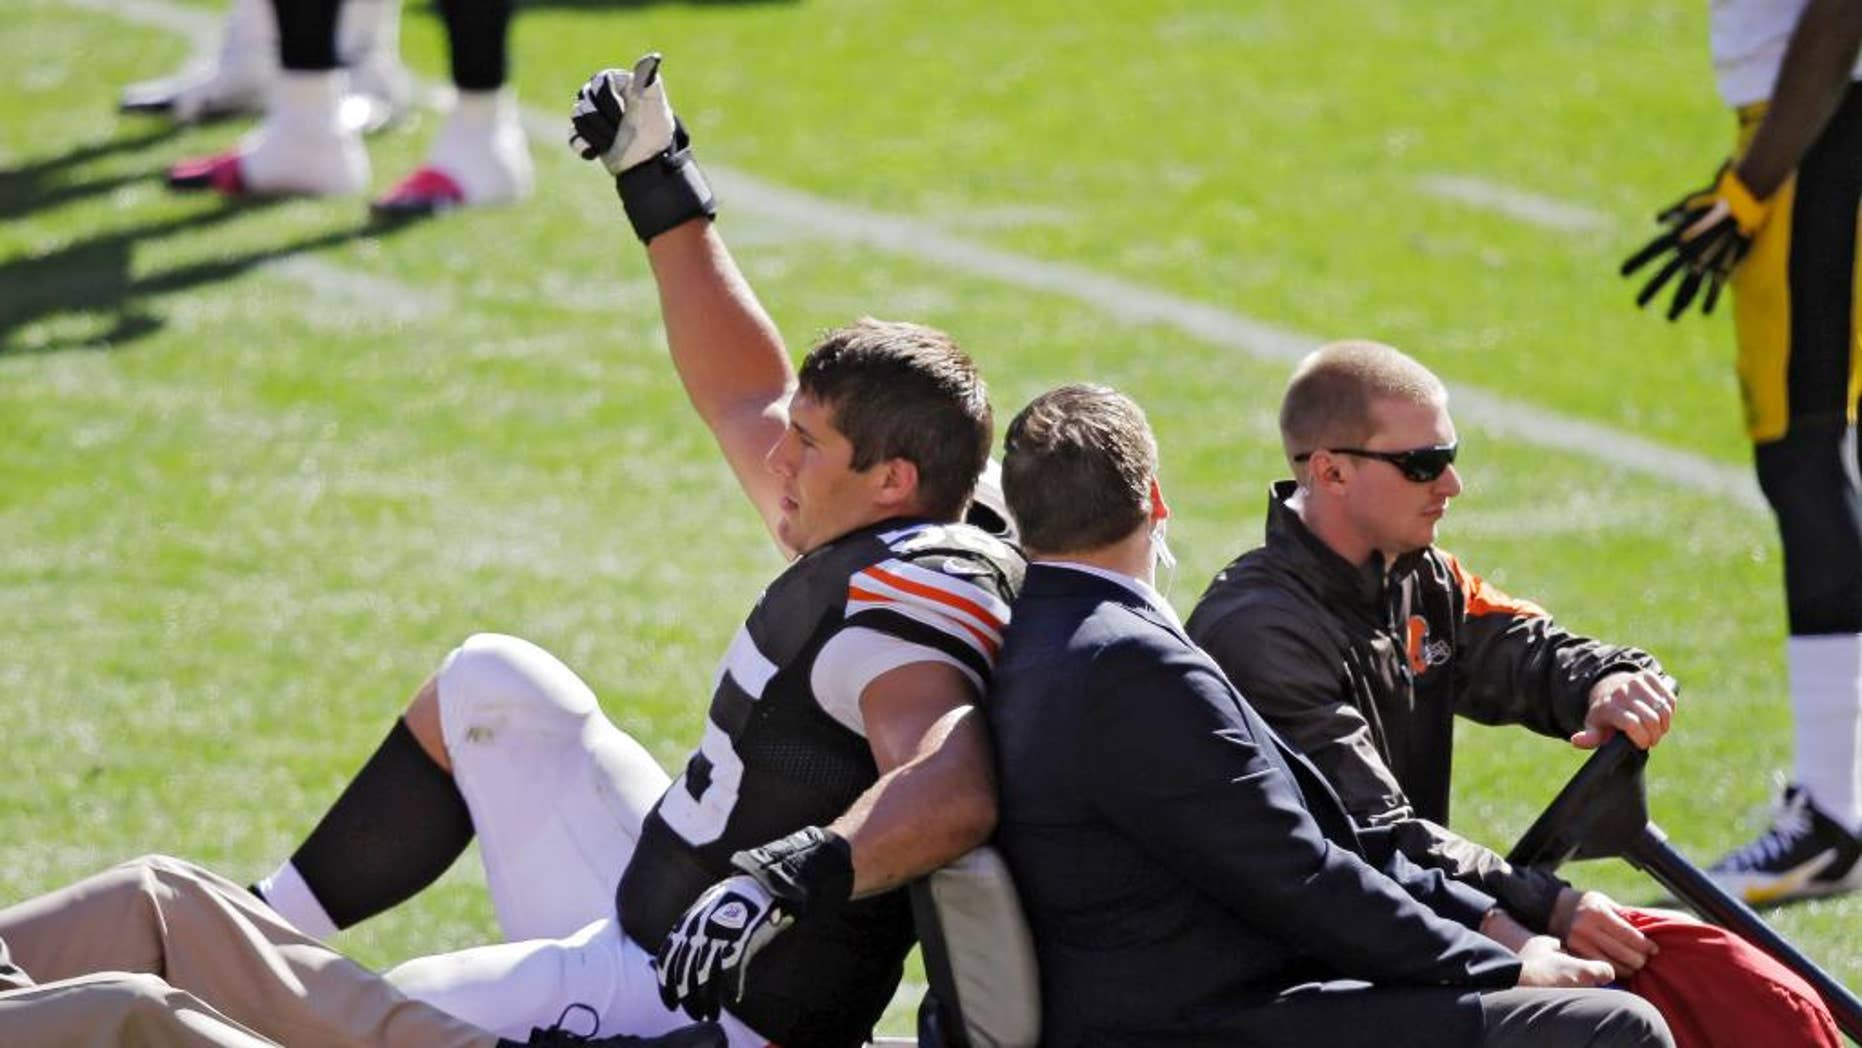 Cleveland Browns center Alex Mack gives a thumbs-upto the crowd as he is taken off the field with an injury in the second quarter of an NFL football game against the Pittsburgh Steelers, Sunday, Oct. 12, 2014, in Cleveland. The Browns won 31-10. (AP Photo/Tony Dejak)